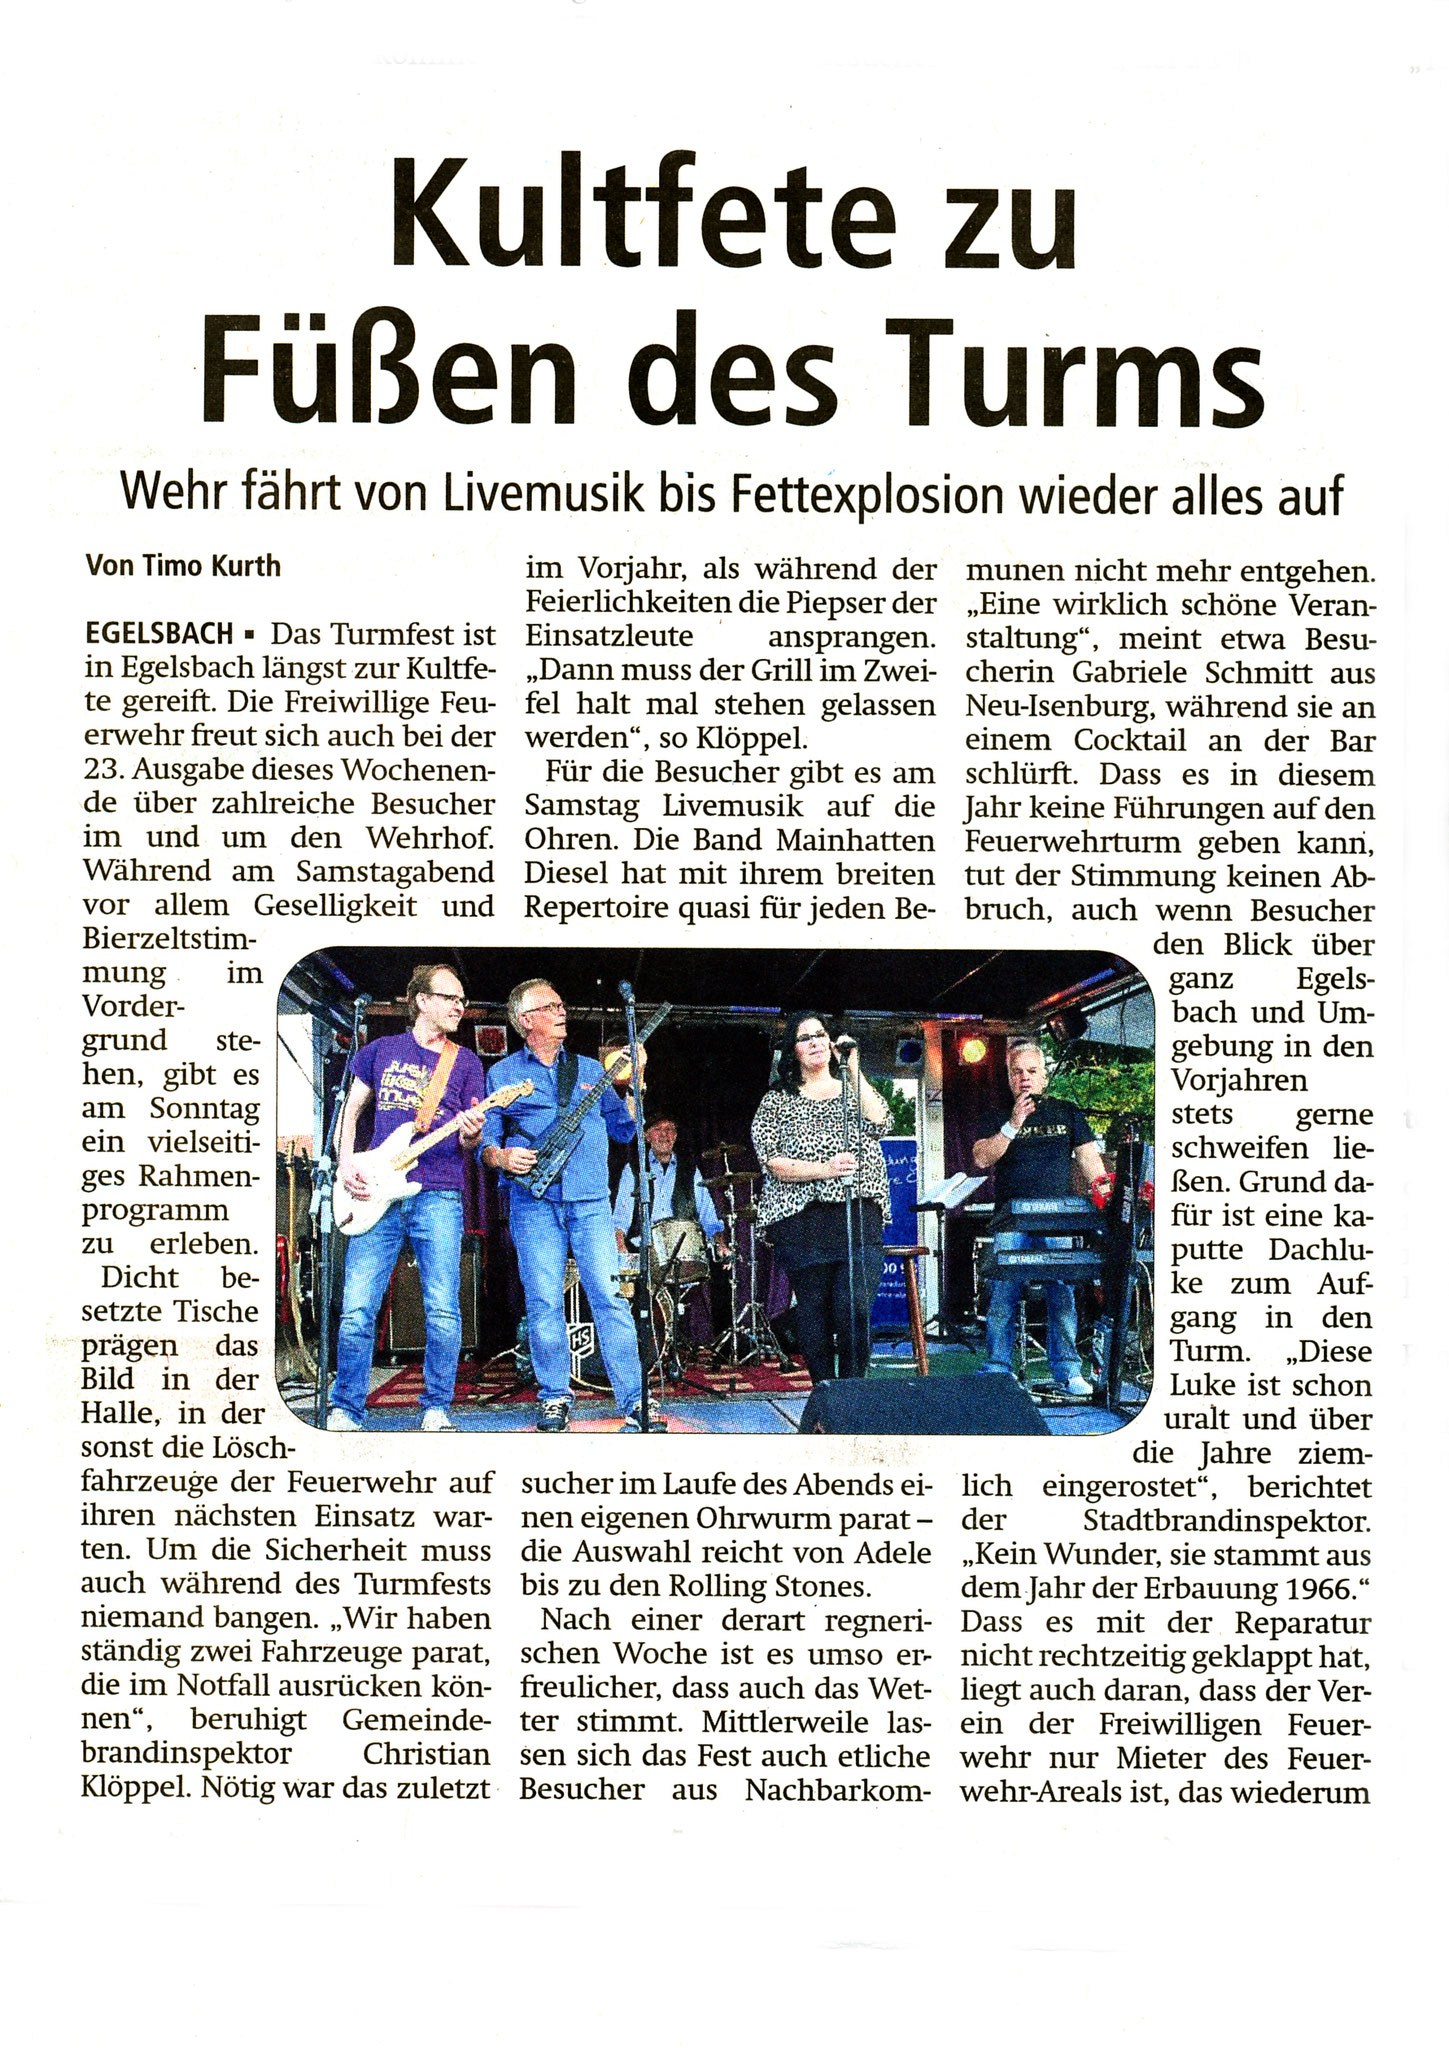 Offenbach Post, 8. August 2016